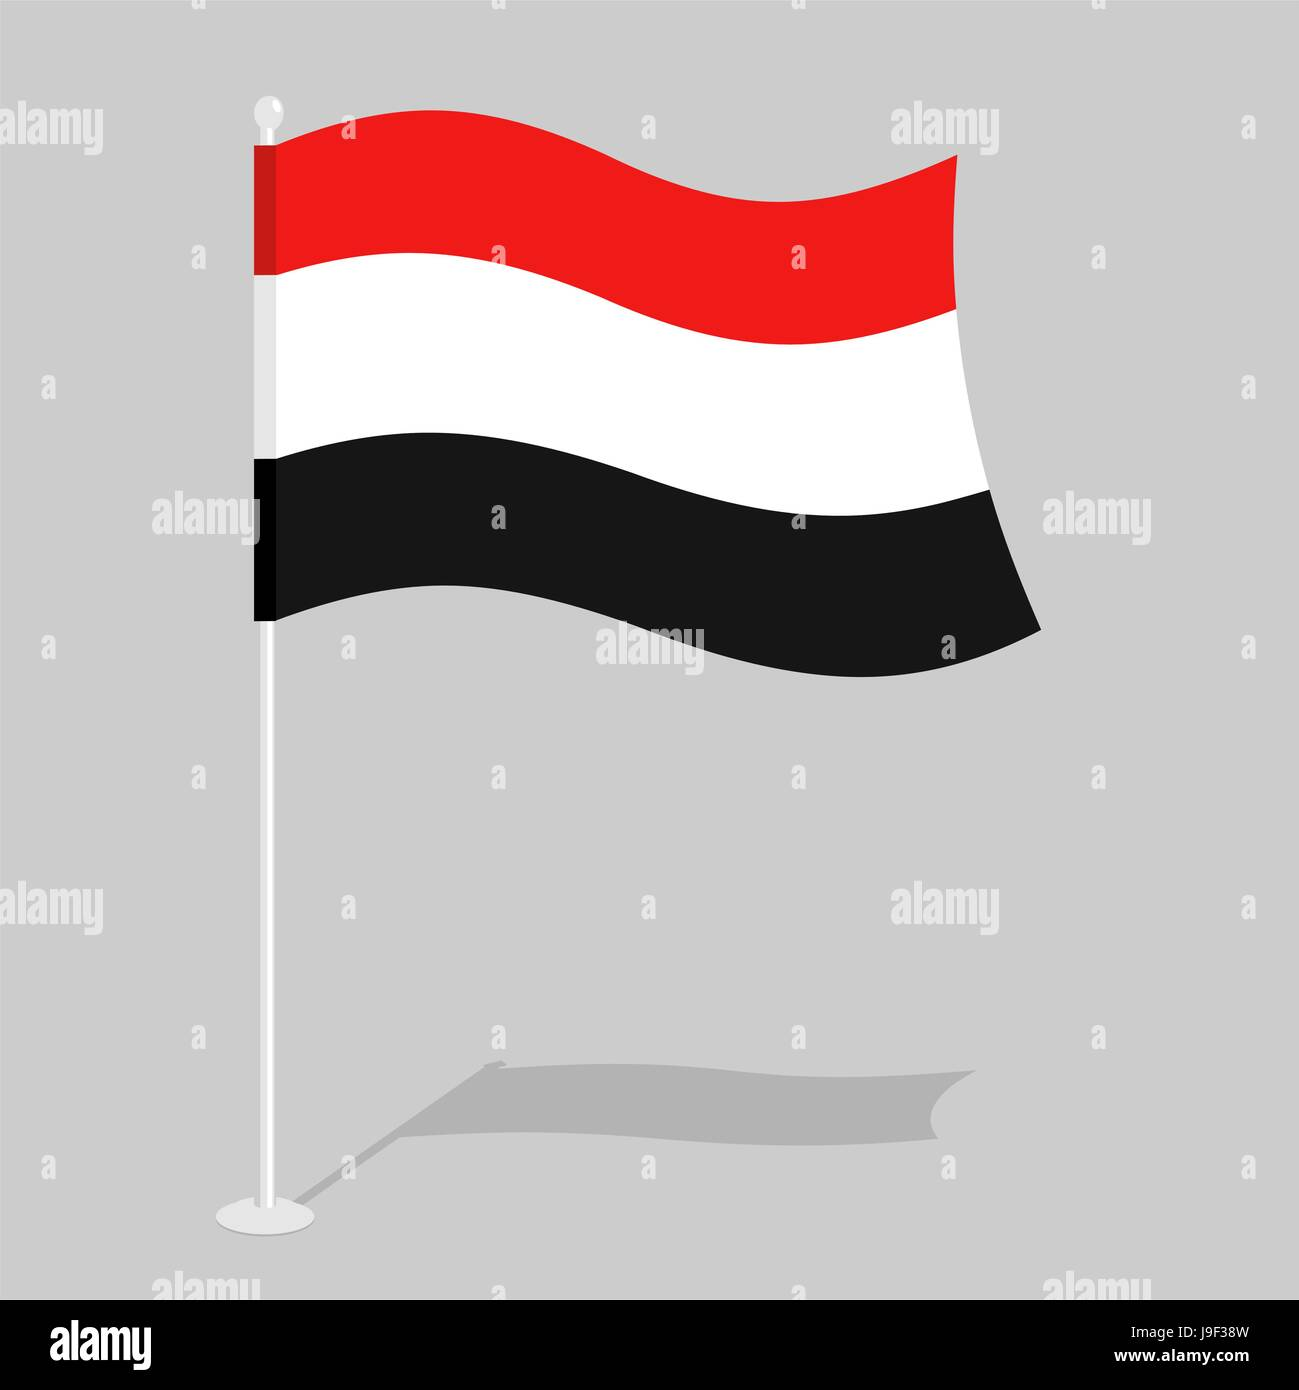 Yemen Flag. Official national mark of Republic of Yemen. Traditional Yemeni flag paced. state in Southwest Asia - Stock Vector